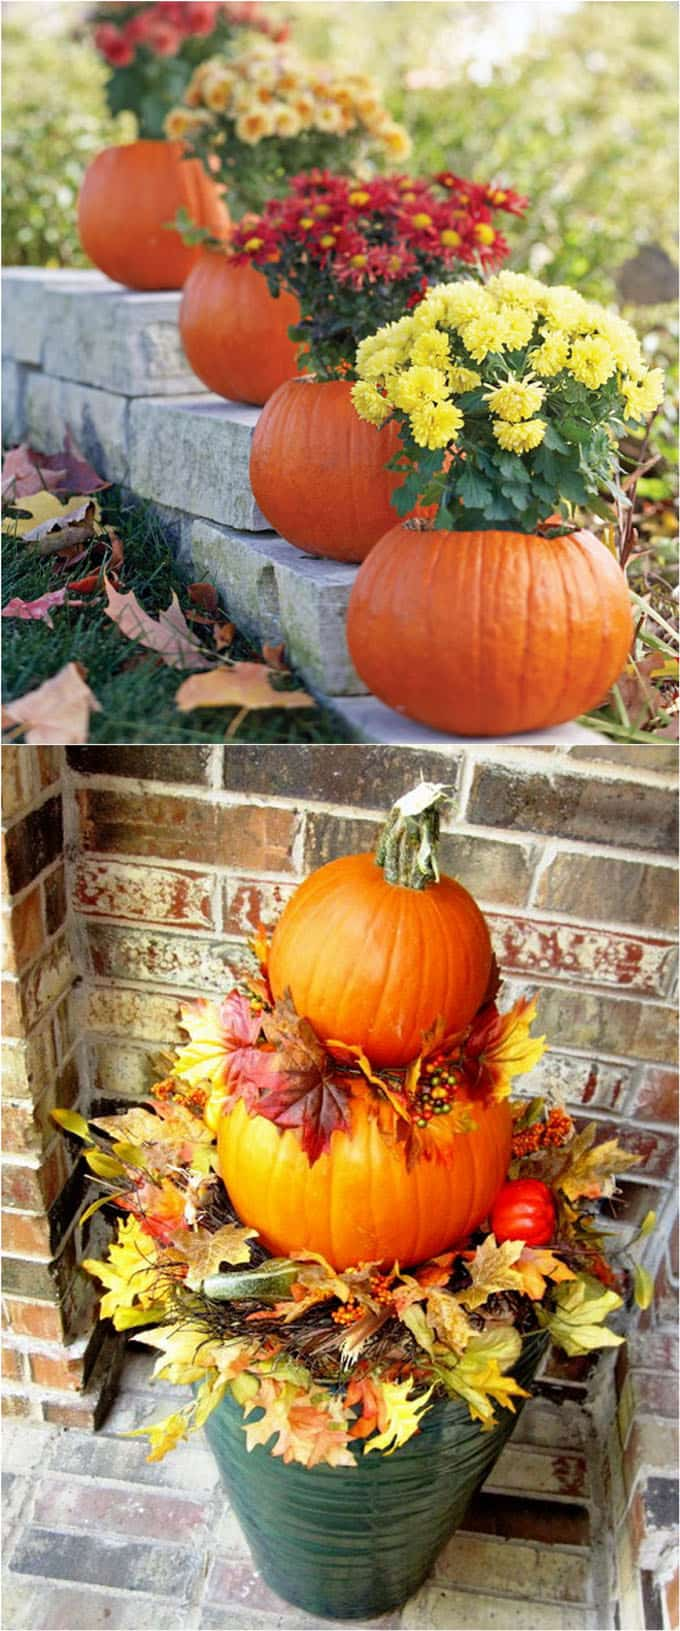 25 splendid front door diy fall decorations a piece of Fall outdoor decorating with pumpkins